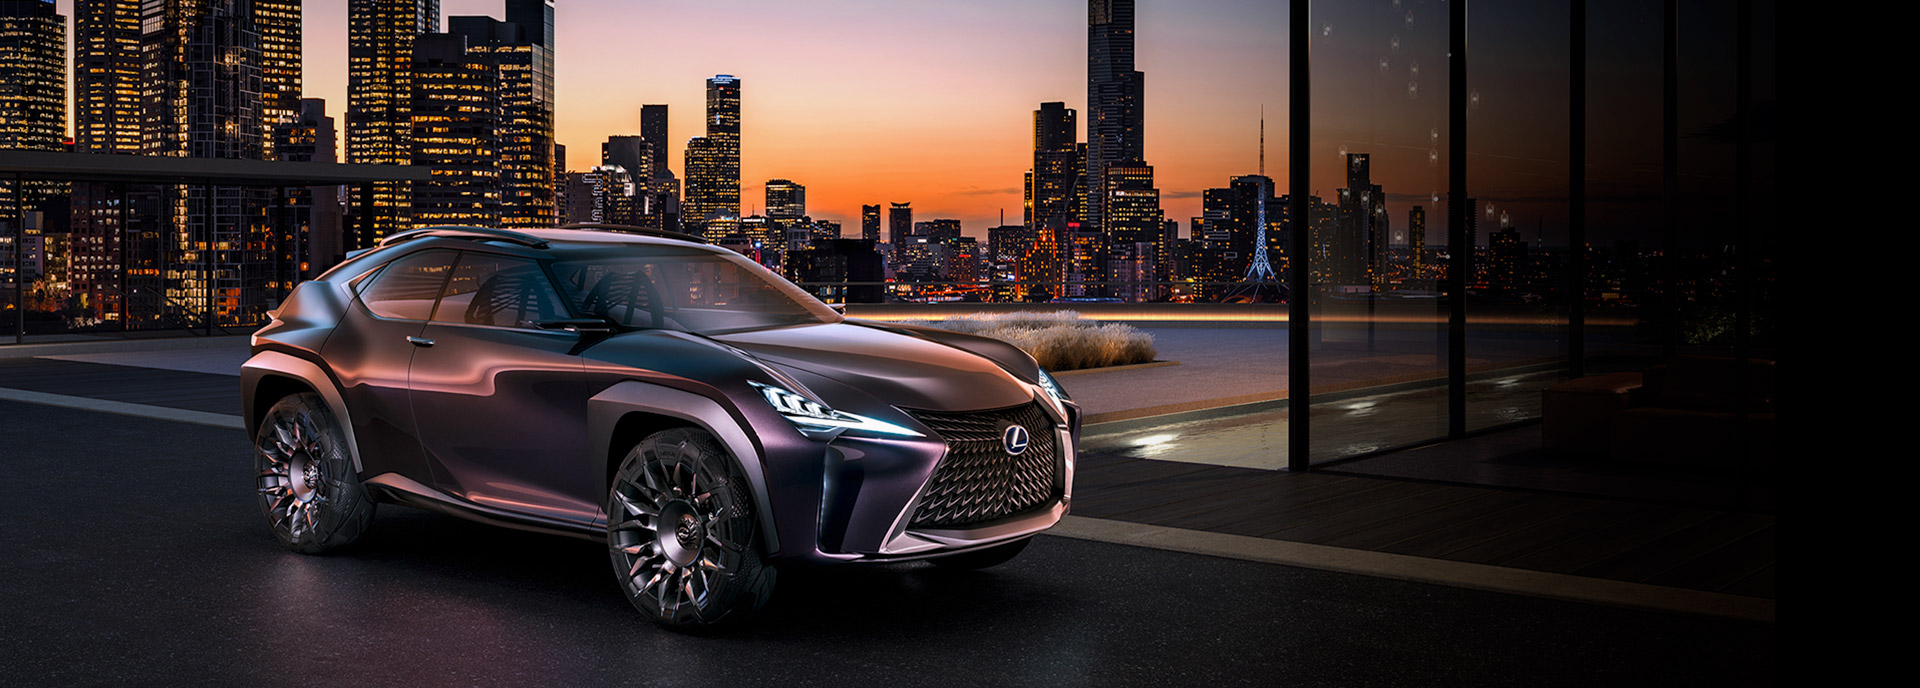 2016 lexus ux paris hero home